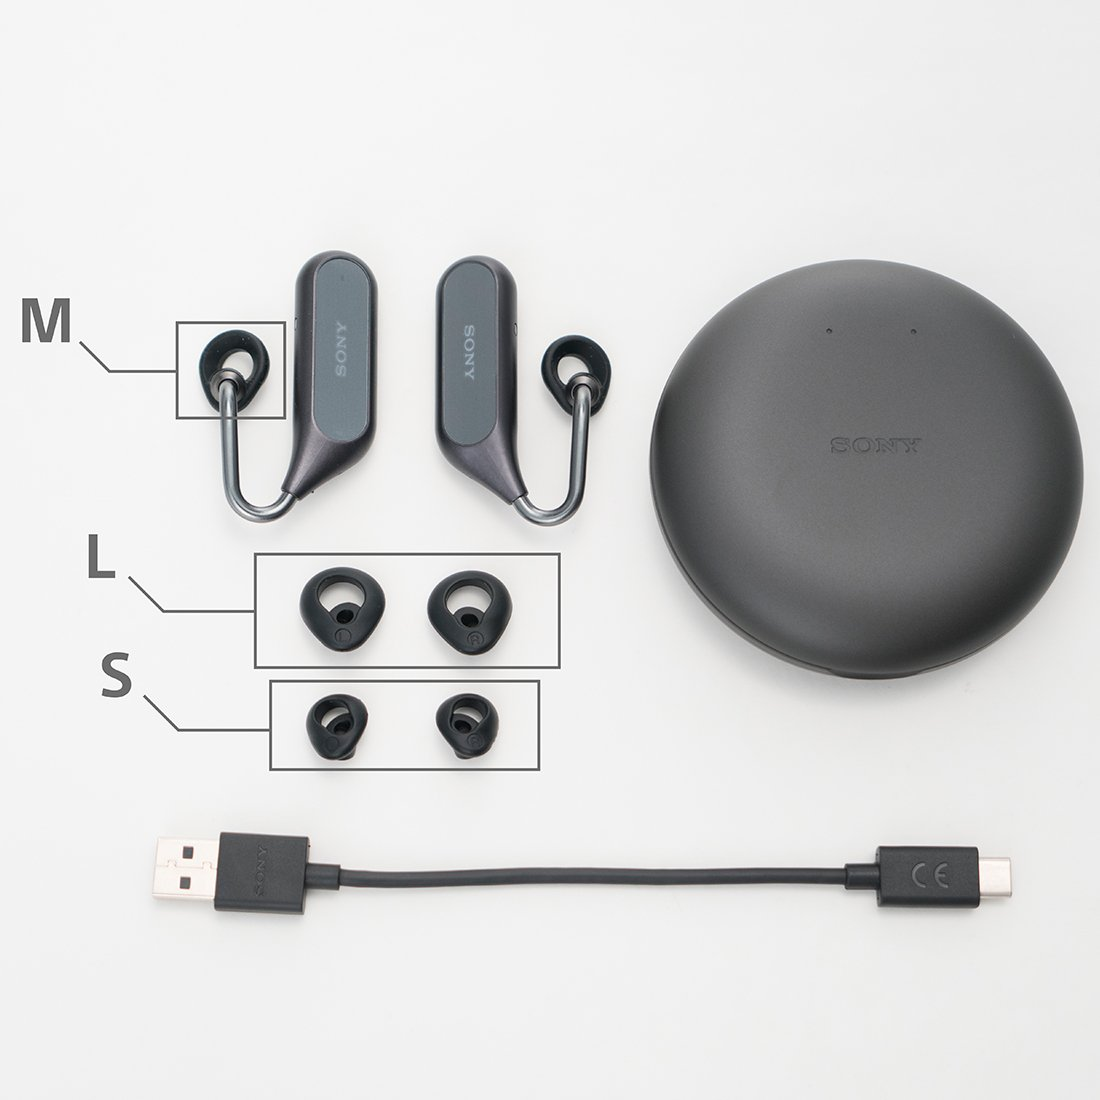 Open Ear Voice Assistant Feature Quad-Beam-Forming Microphone Equipped 2018 Model Black XEA20JP B Sony SONY Completely Wireless Earphone Xperia Ear Duo XEA20JP